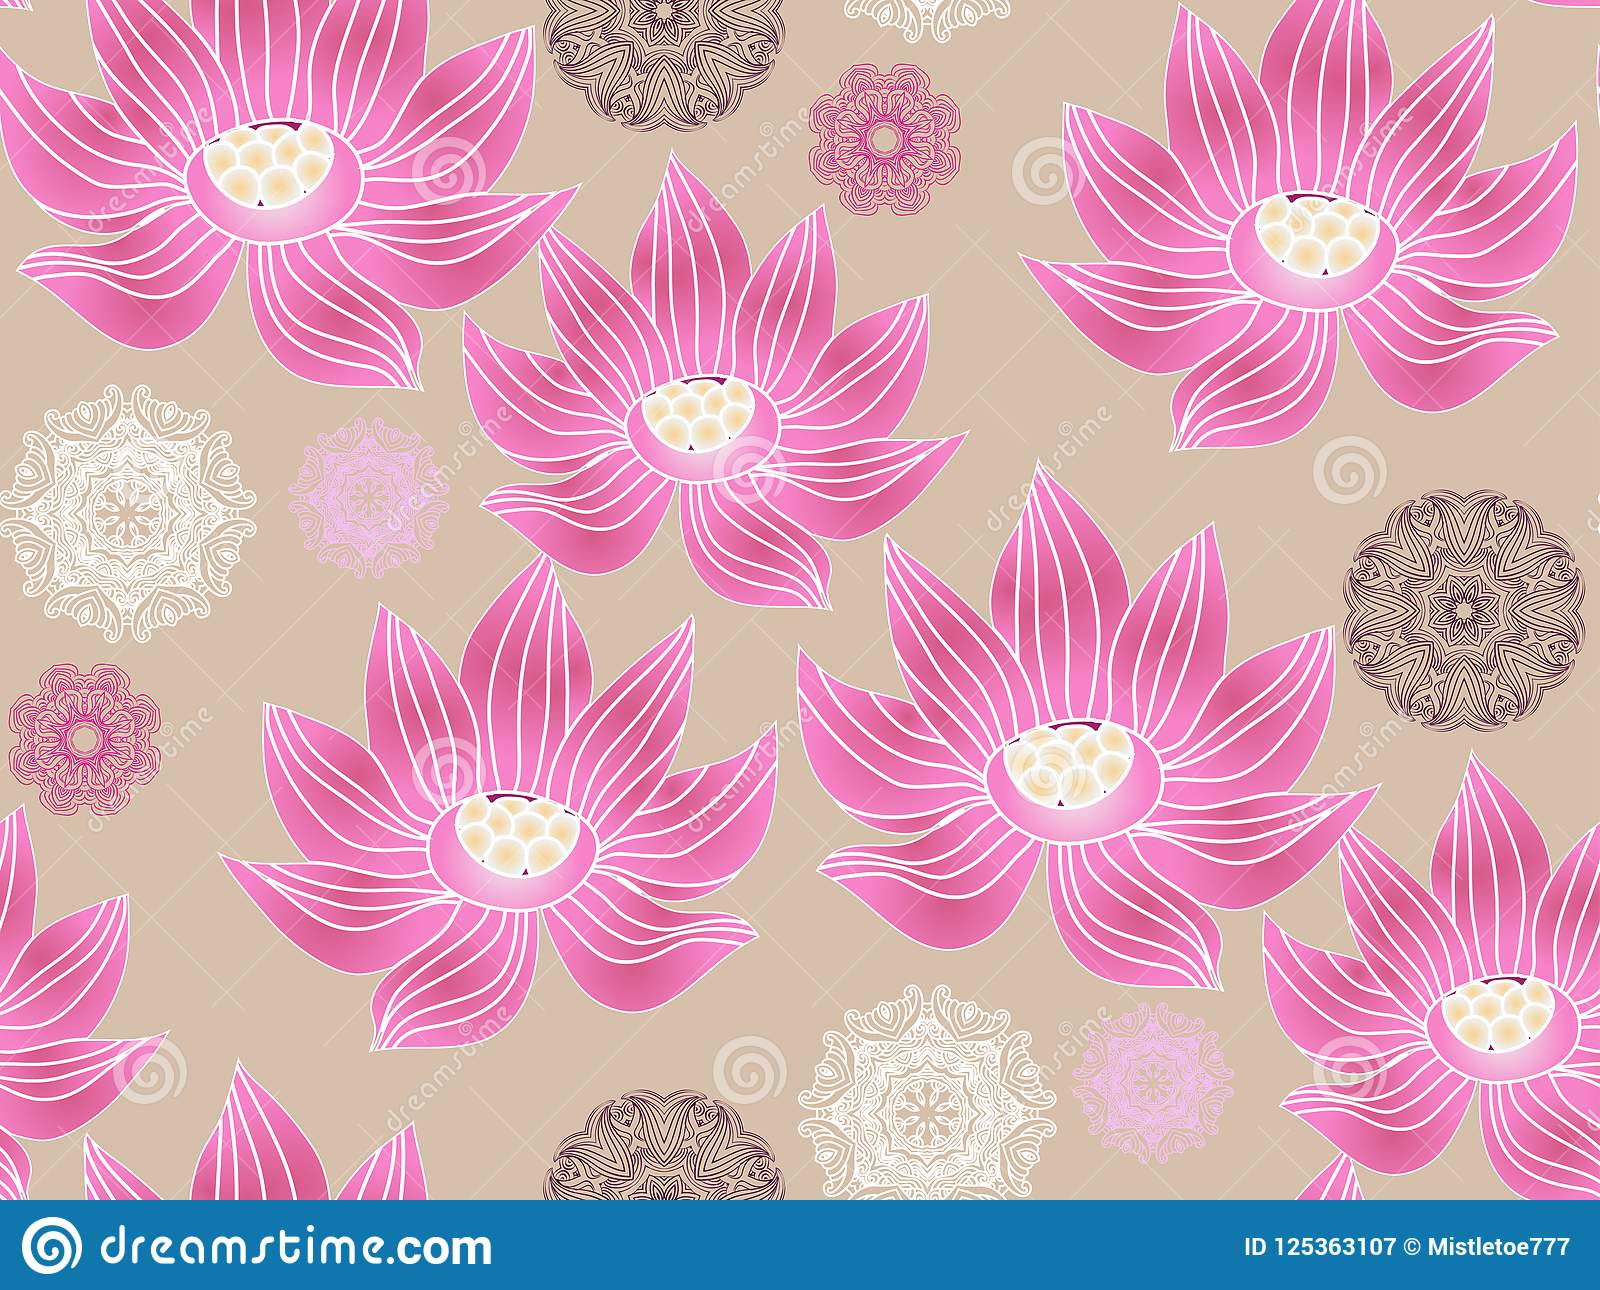 Lotus Pattern2 Stock Vector Illustration Of Line Drawing 125363107